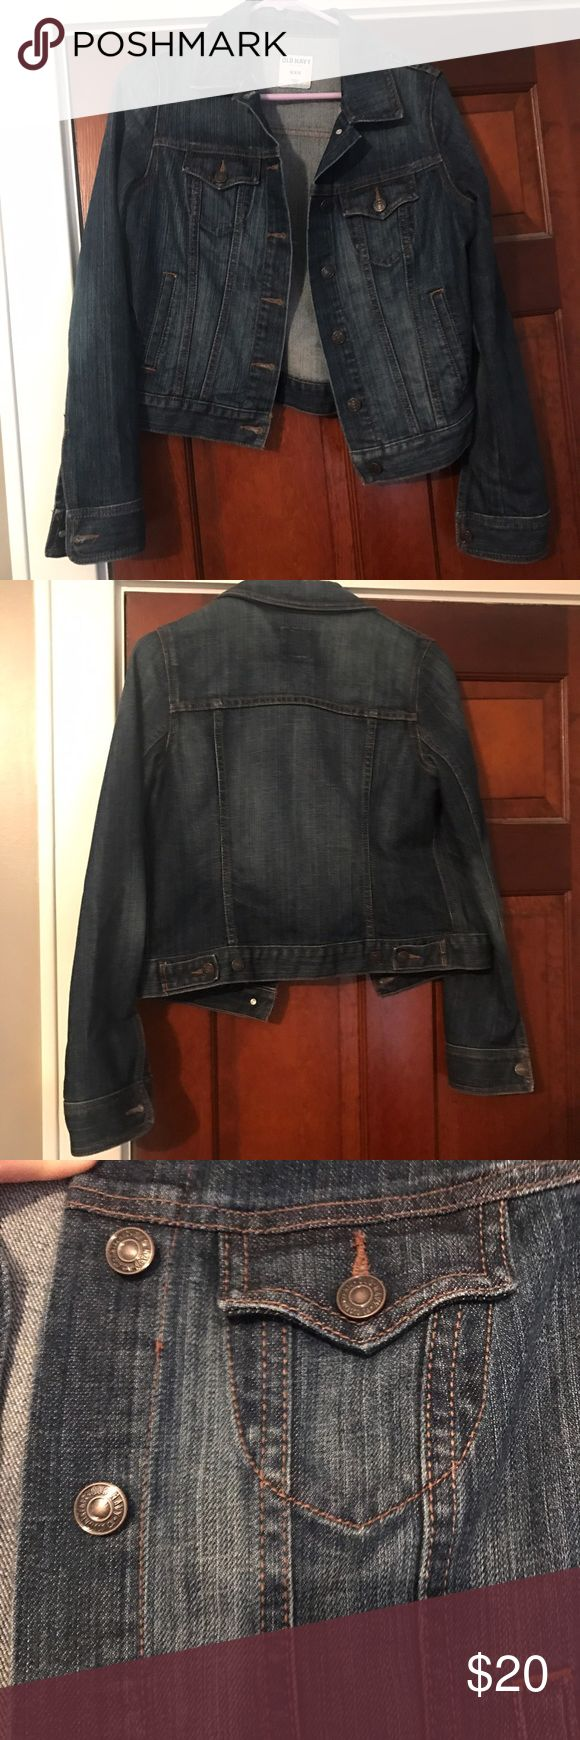 Old Navy Jean Jacket Denim jacket from Old Navy. In great condition. Old Navy Jackets & Coats Jean Jackets